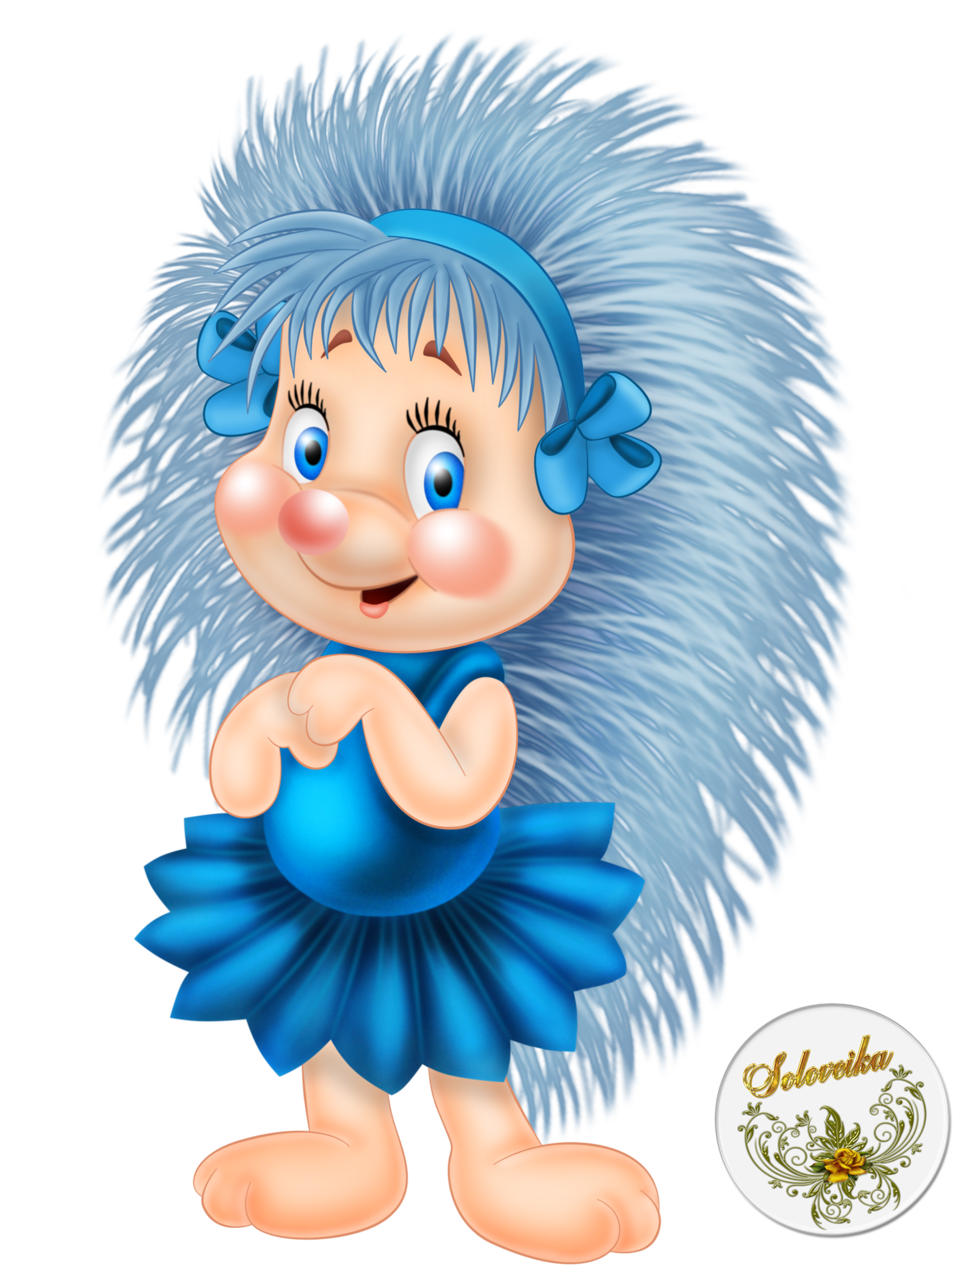 soloveika cliparts pinterest. House clipart baby